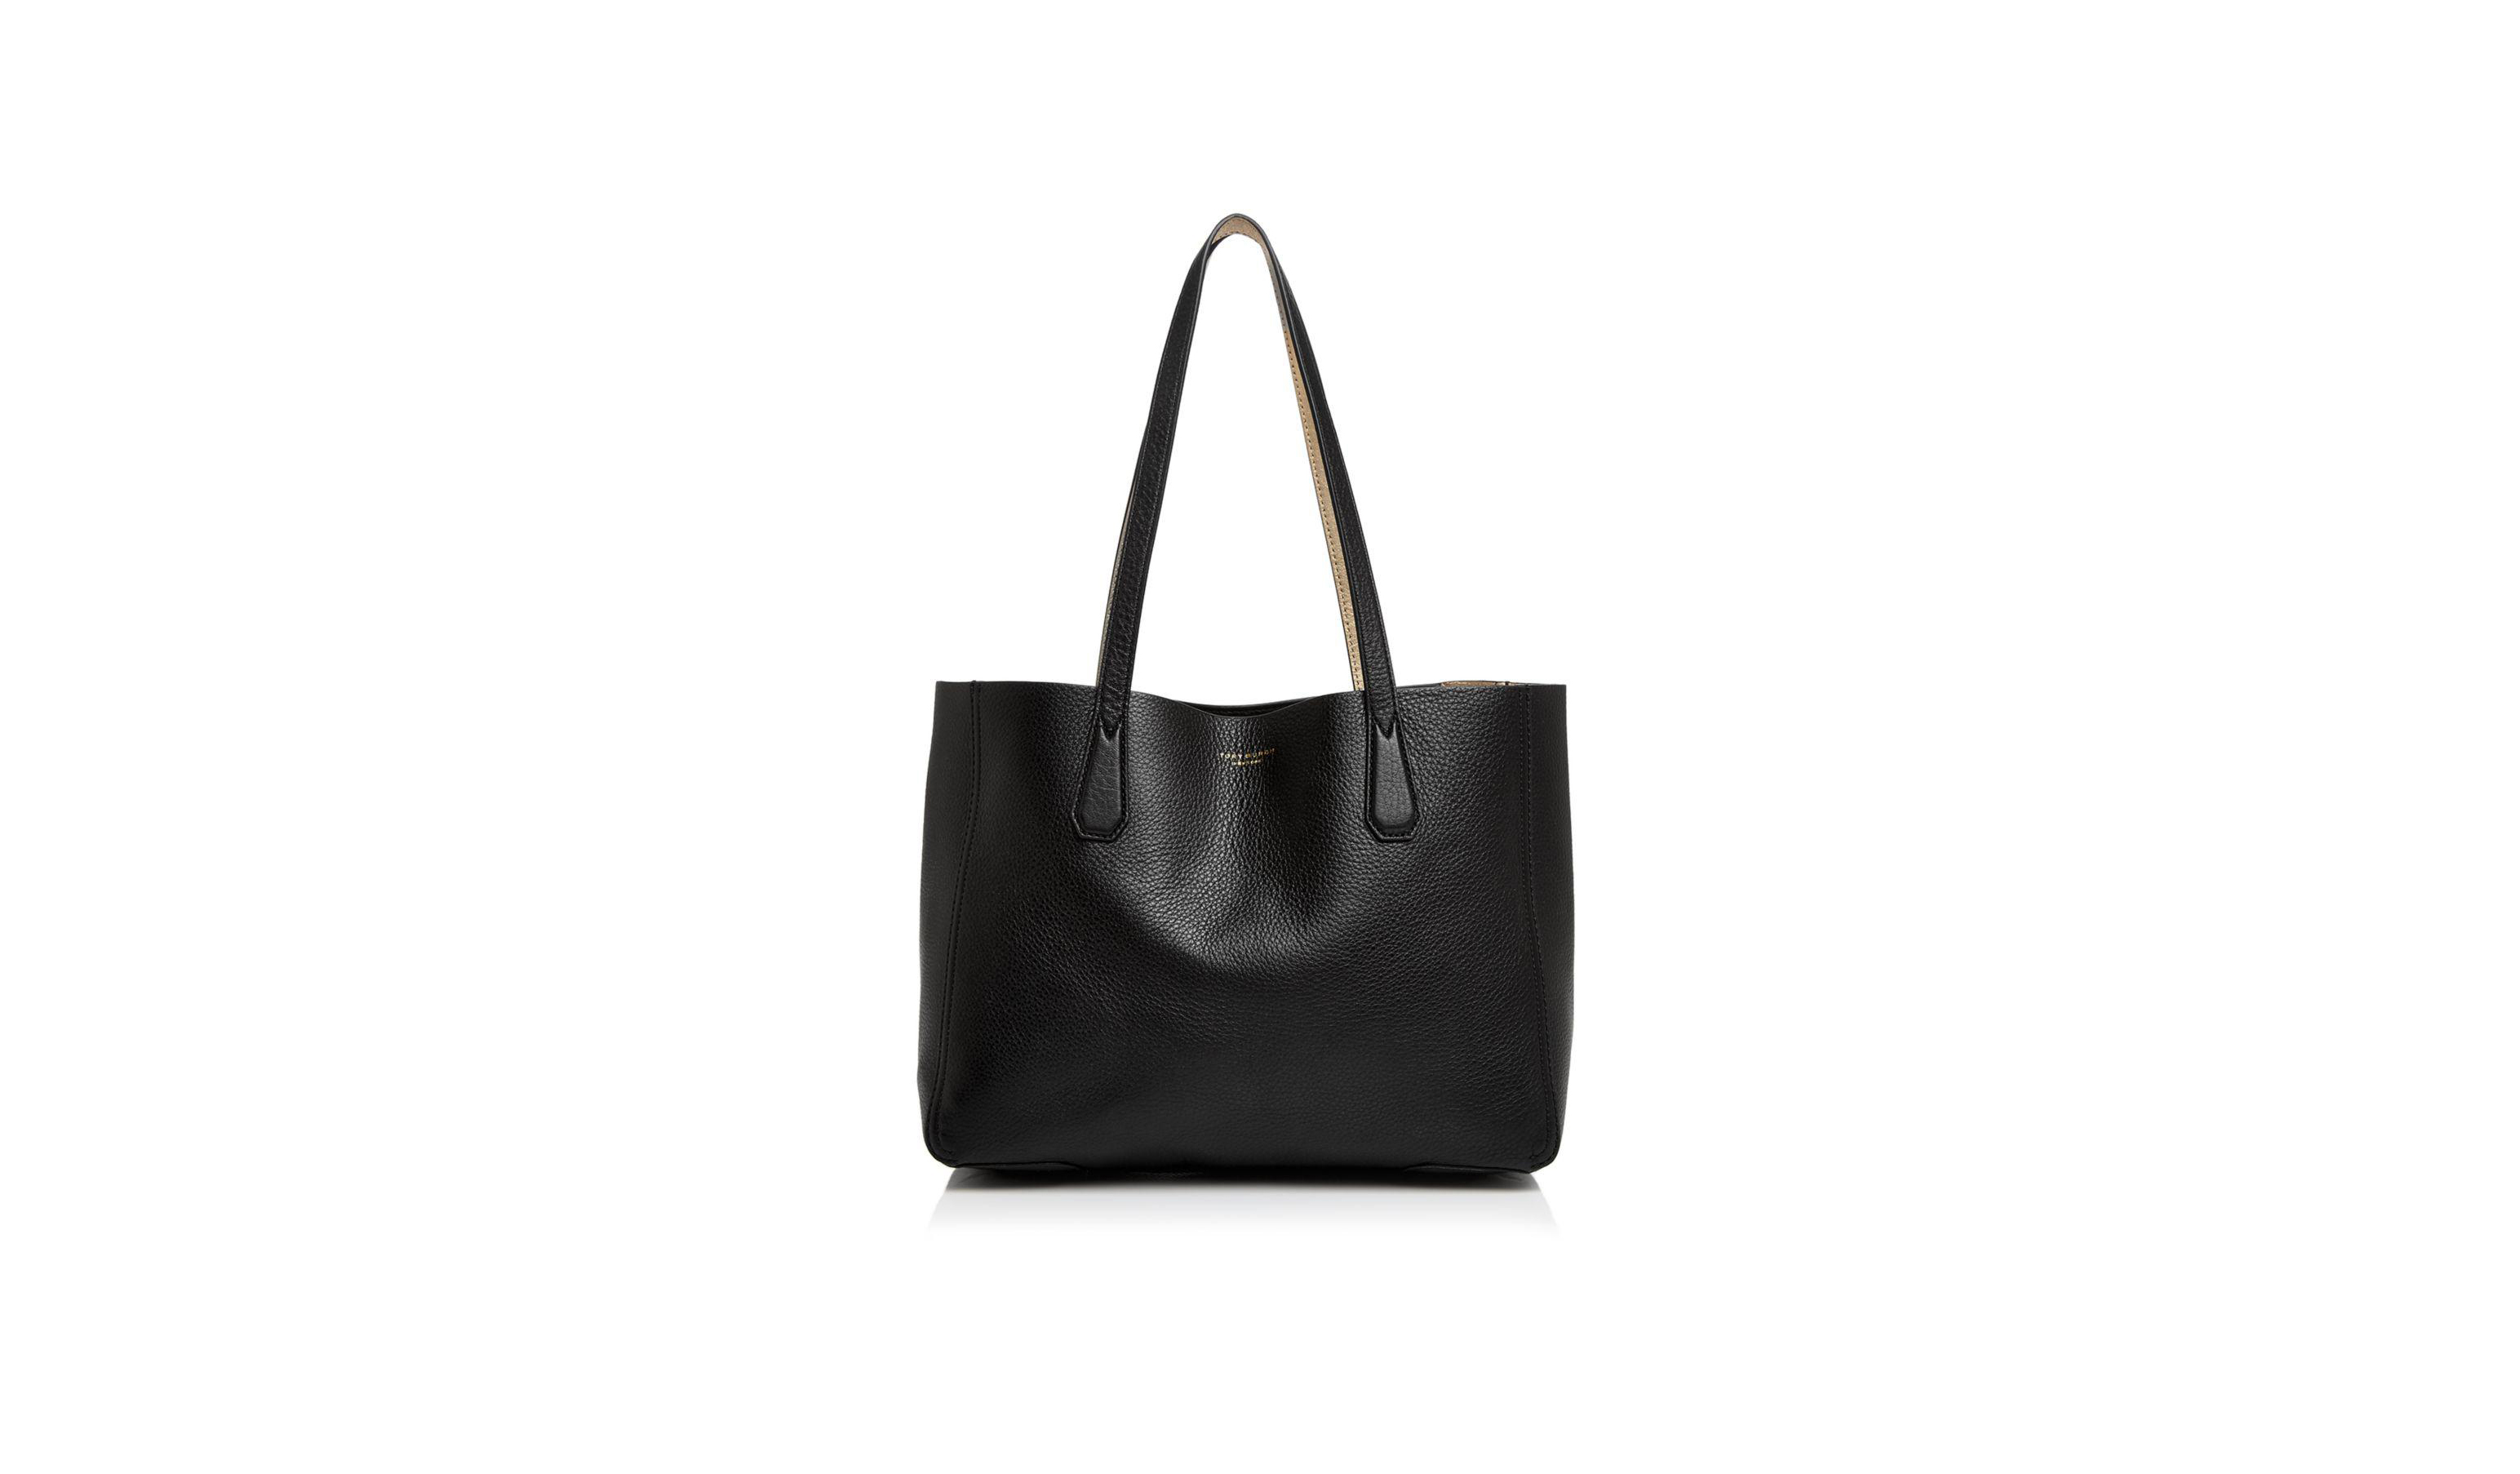 17e41c20ecde This Tory Burch Leather Tote Is the Perfect Everyday Bag